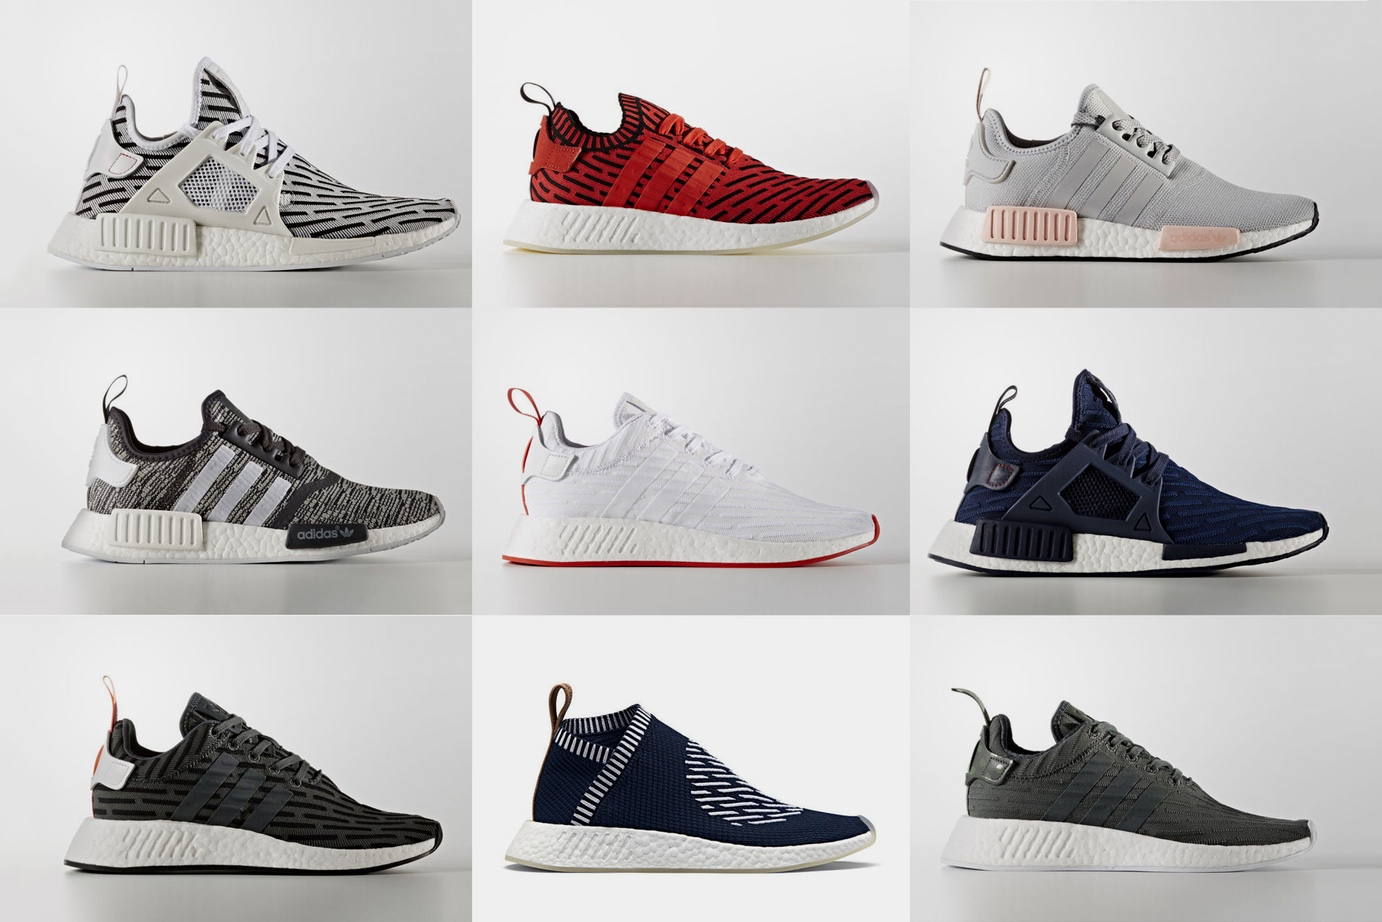 35472e497 Fans of adidas s coveted NMD silhouette will now have a reason to  celebrate. Today